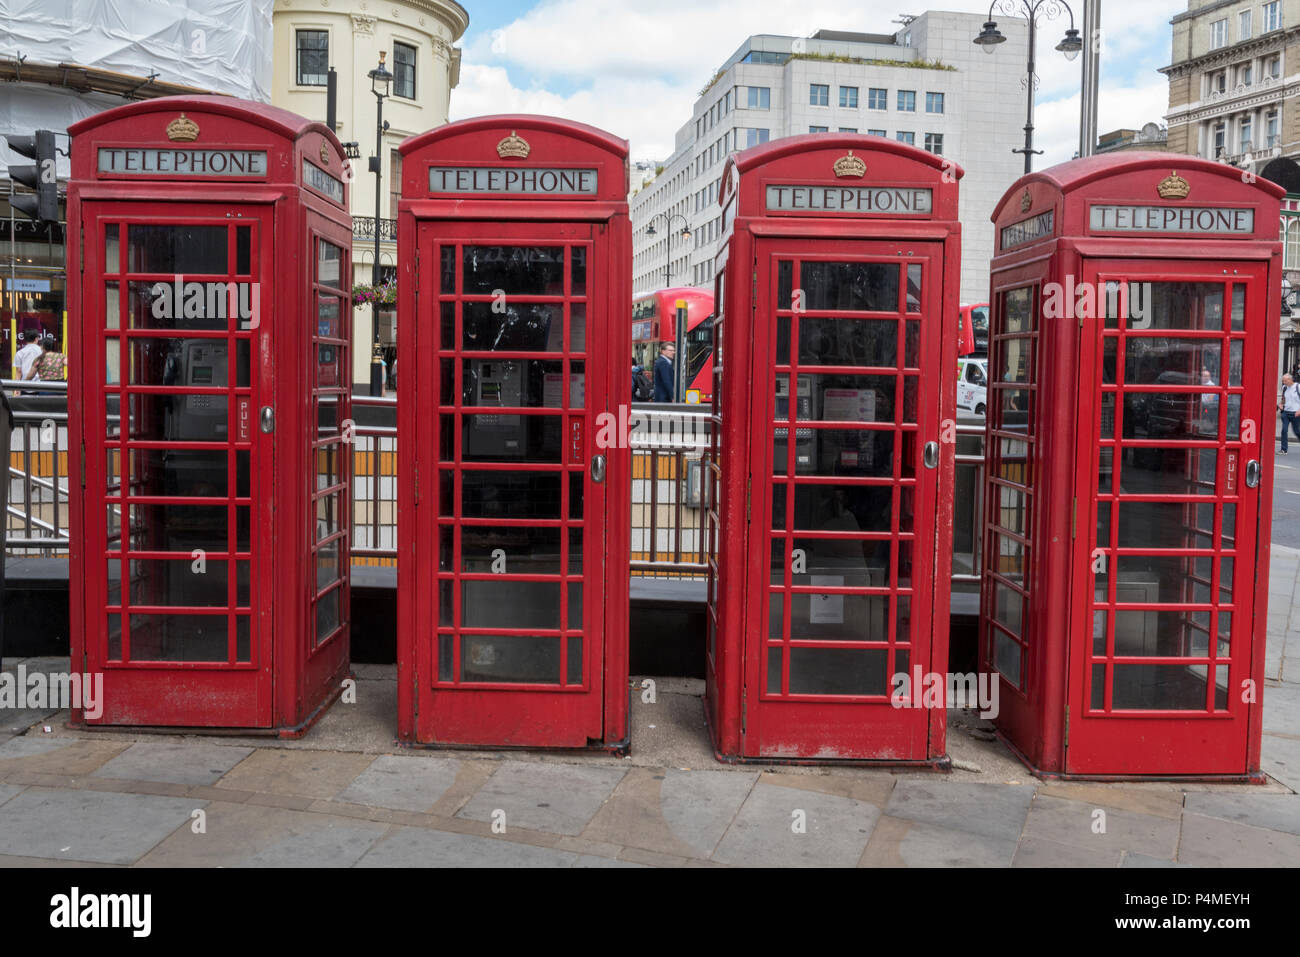 red telephone boxes or call boxes, lonon - Stock Image